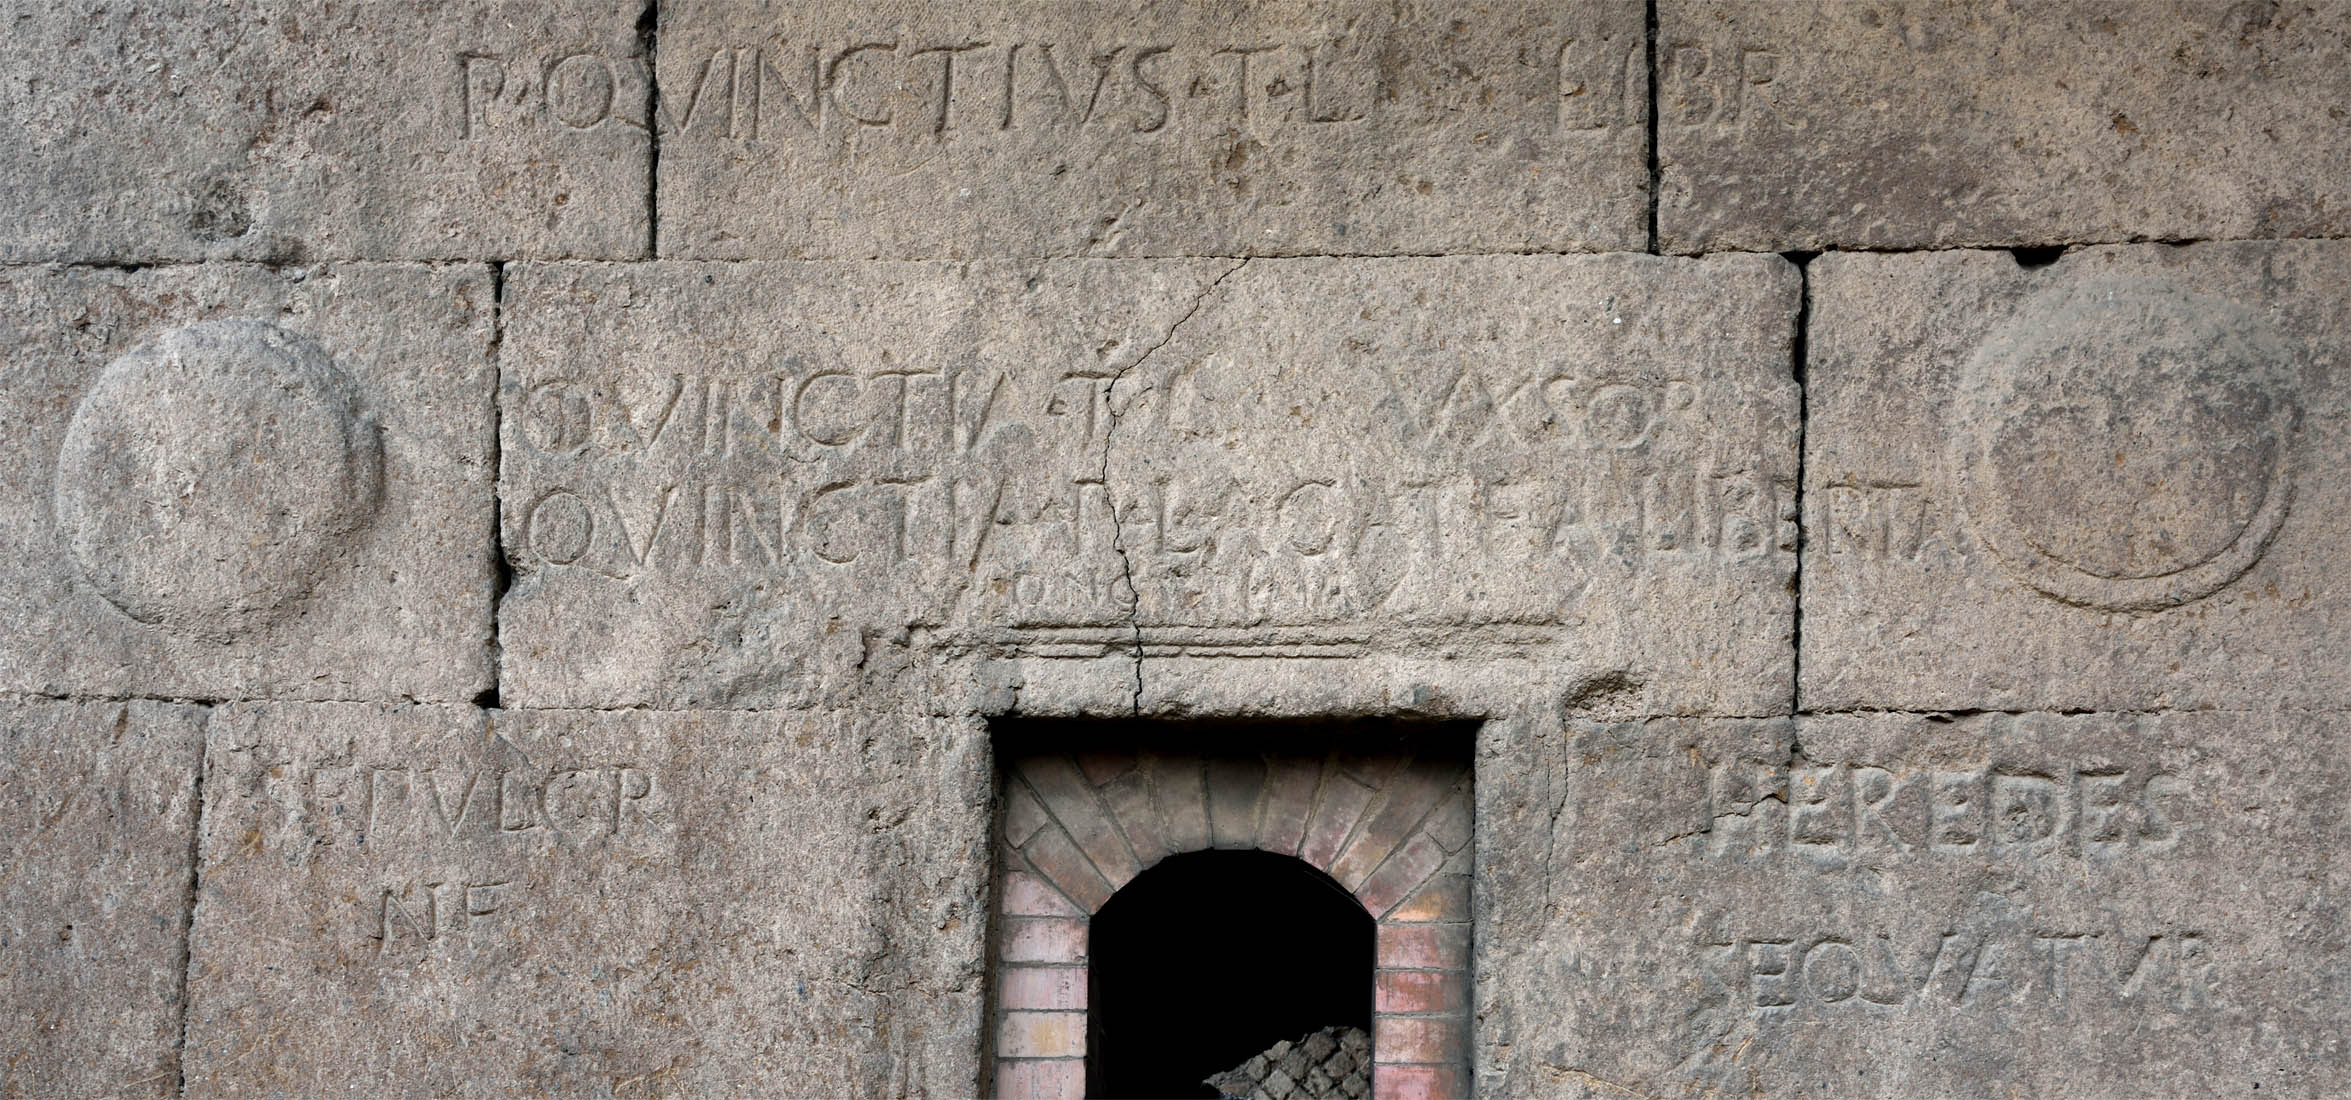 Inscription from sepulchre of Quinctii (tomb A). 100—71 BCE. CIL I2 2527a. ILLRP 795. AE 2000, 181. Rome, Tombs on the Via Statilia